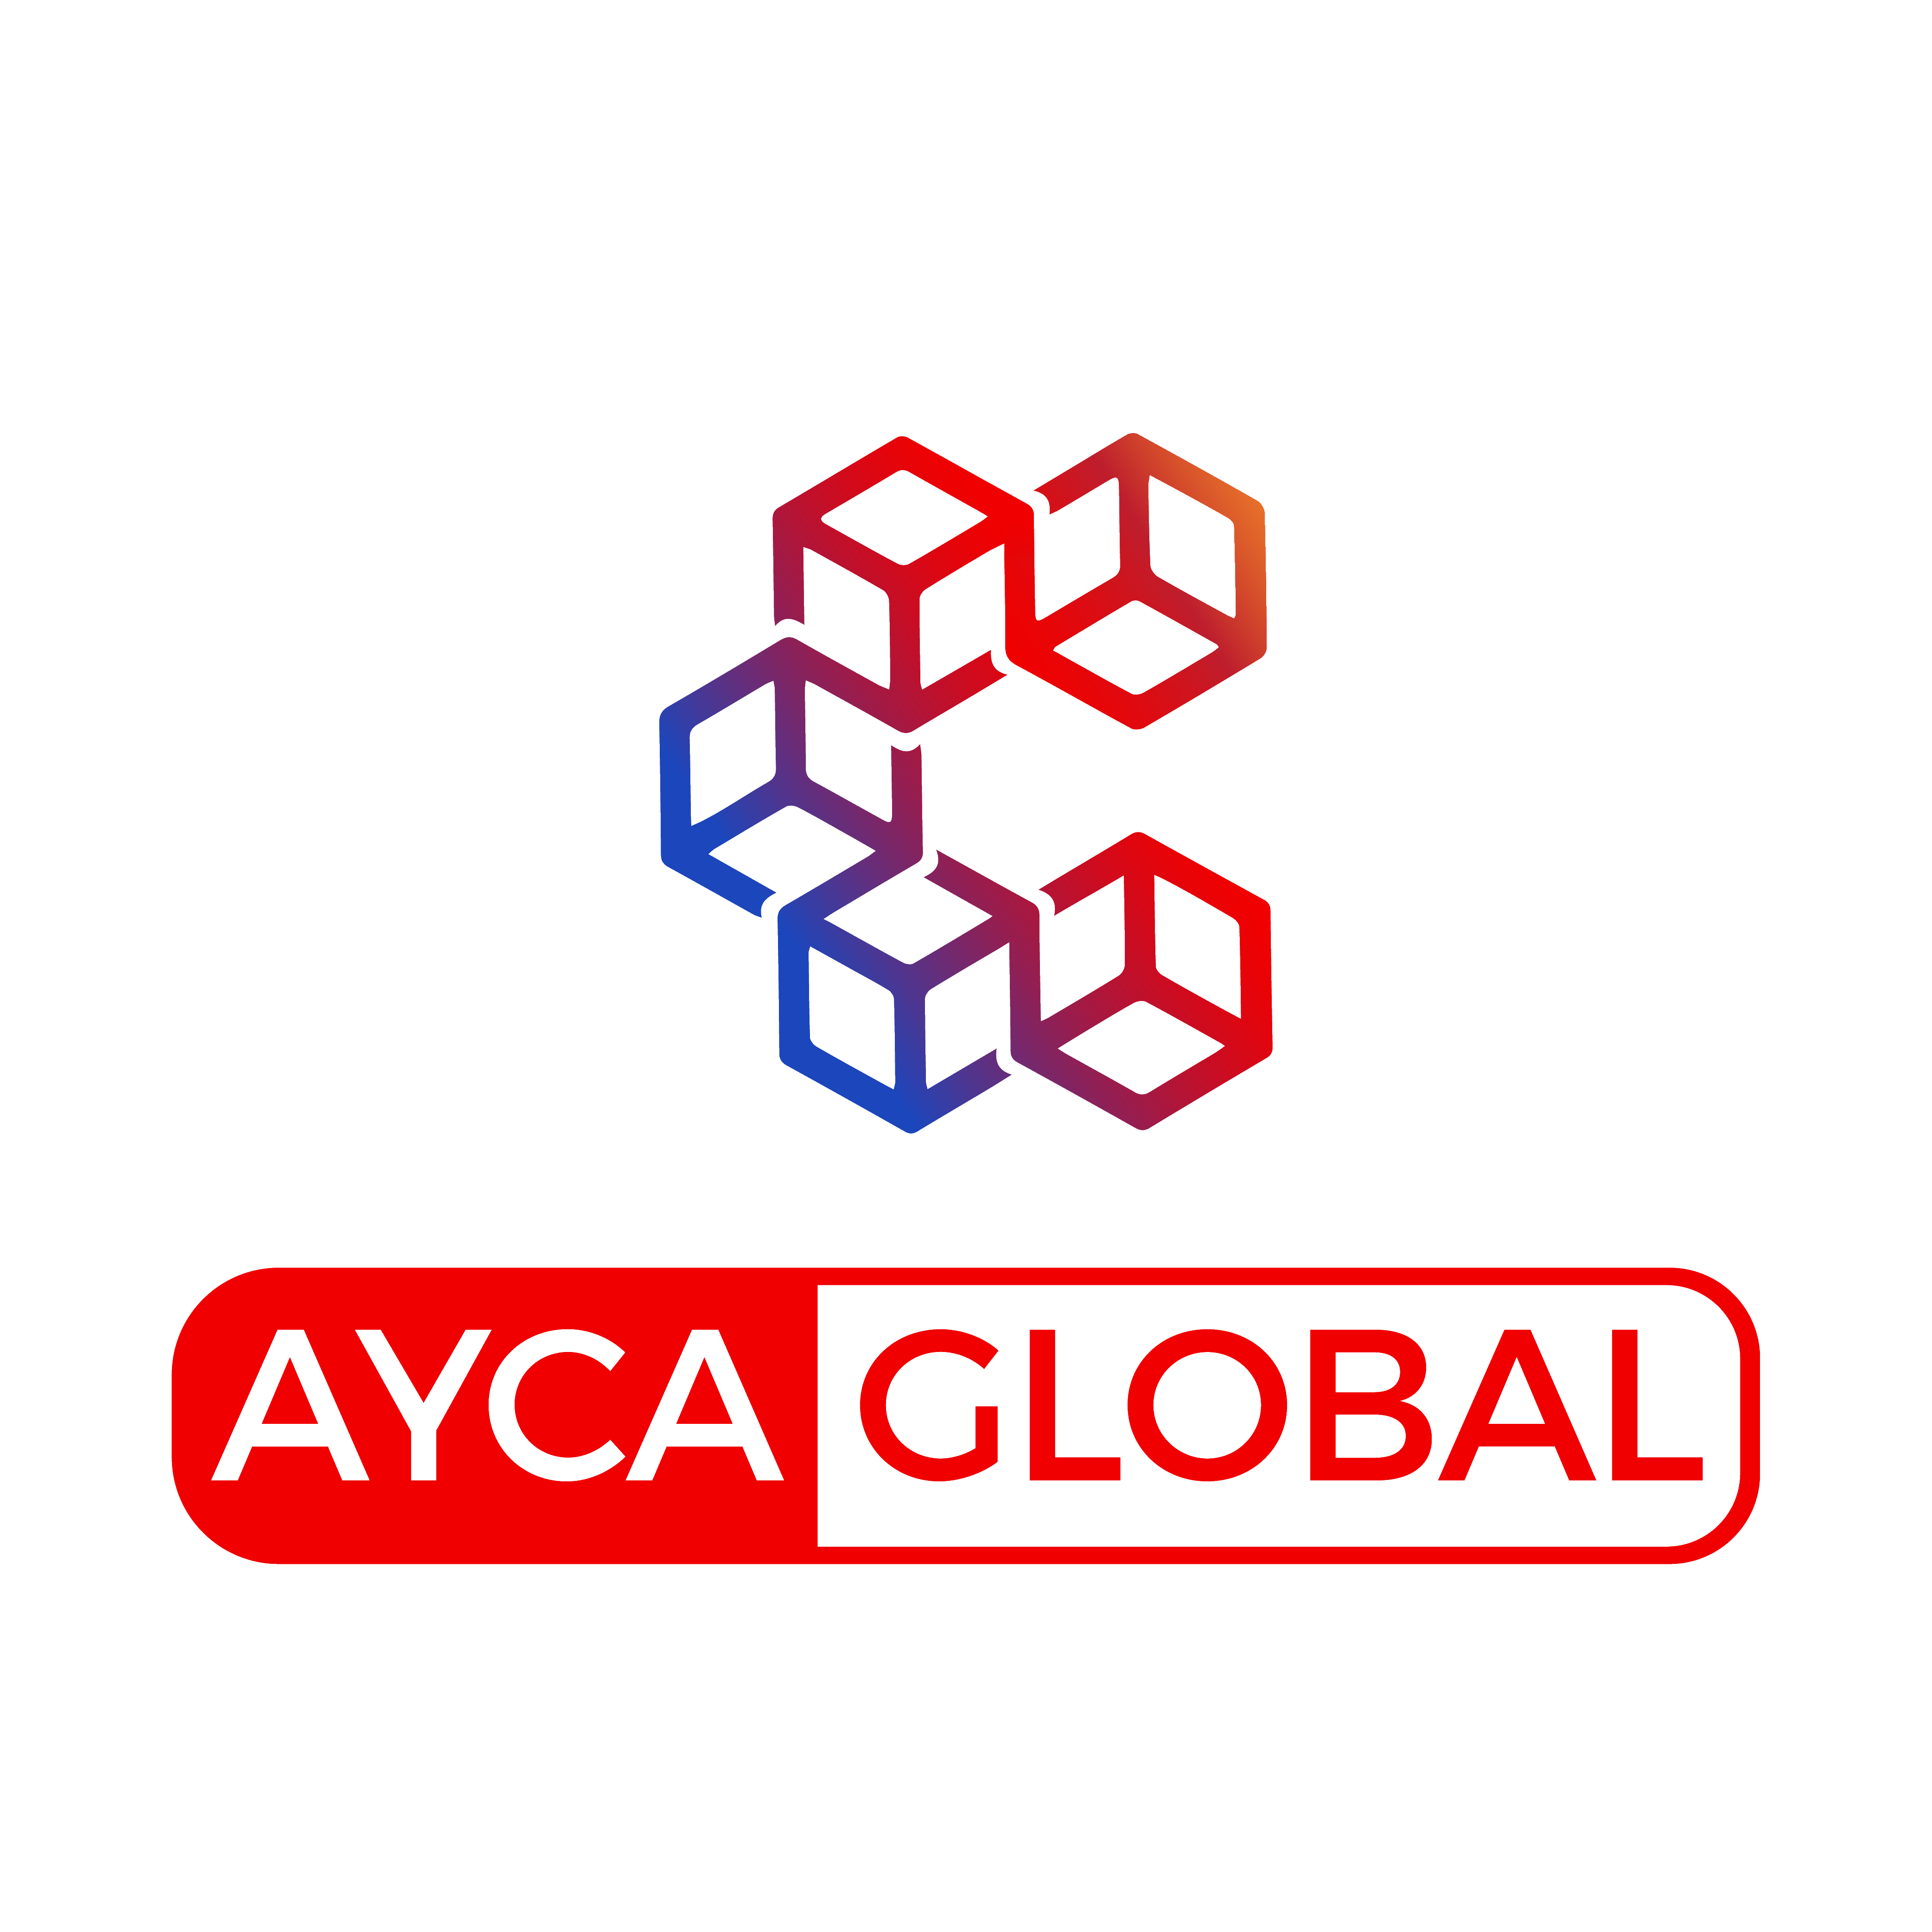 https://www.mncjobsindia.com/company/ayca-global-recruitment-services